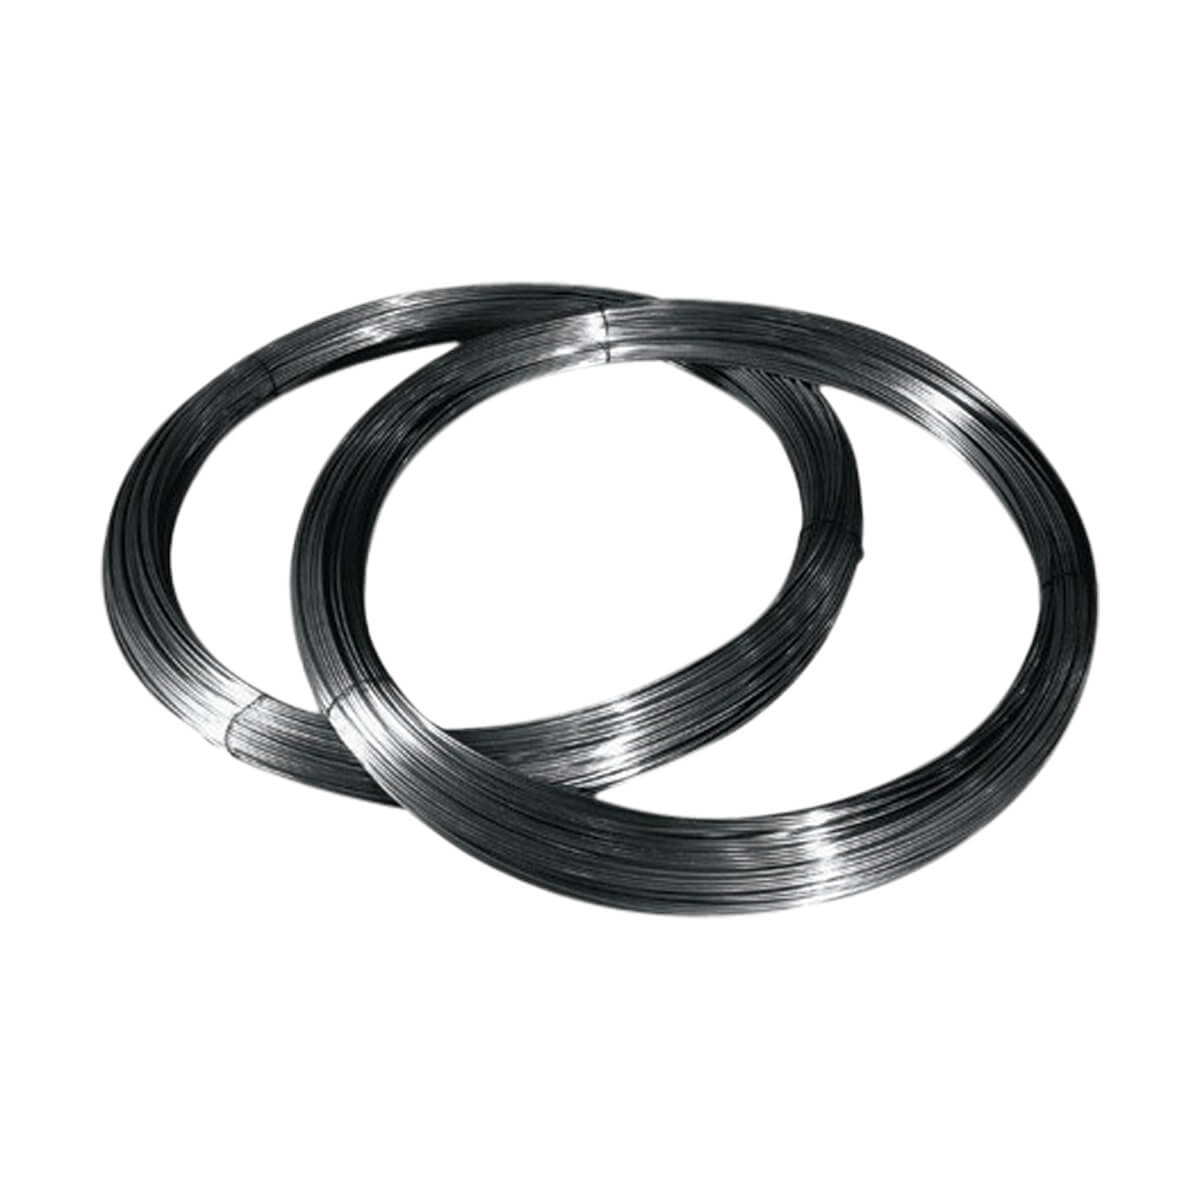 Annealed Wire - 9GA / 10LB